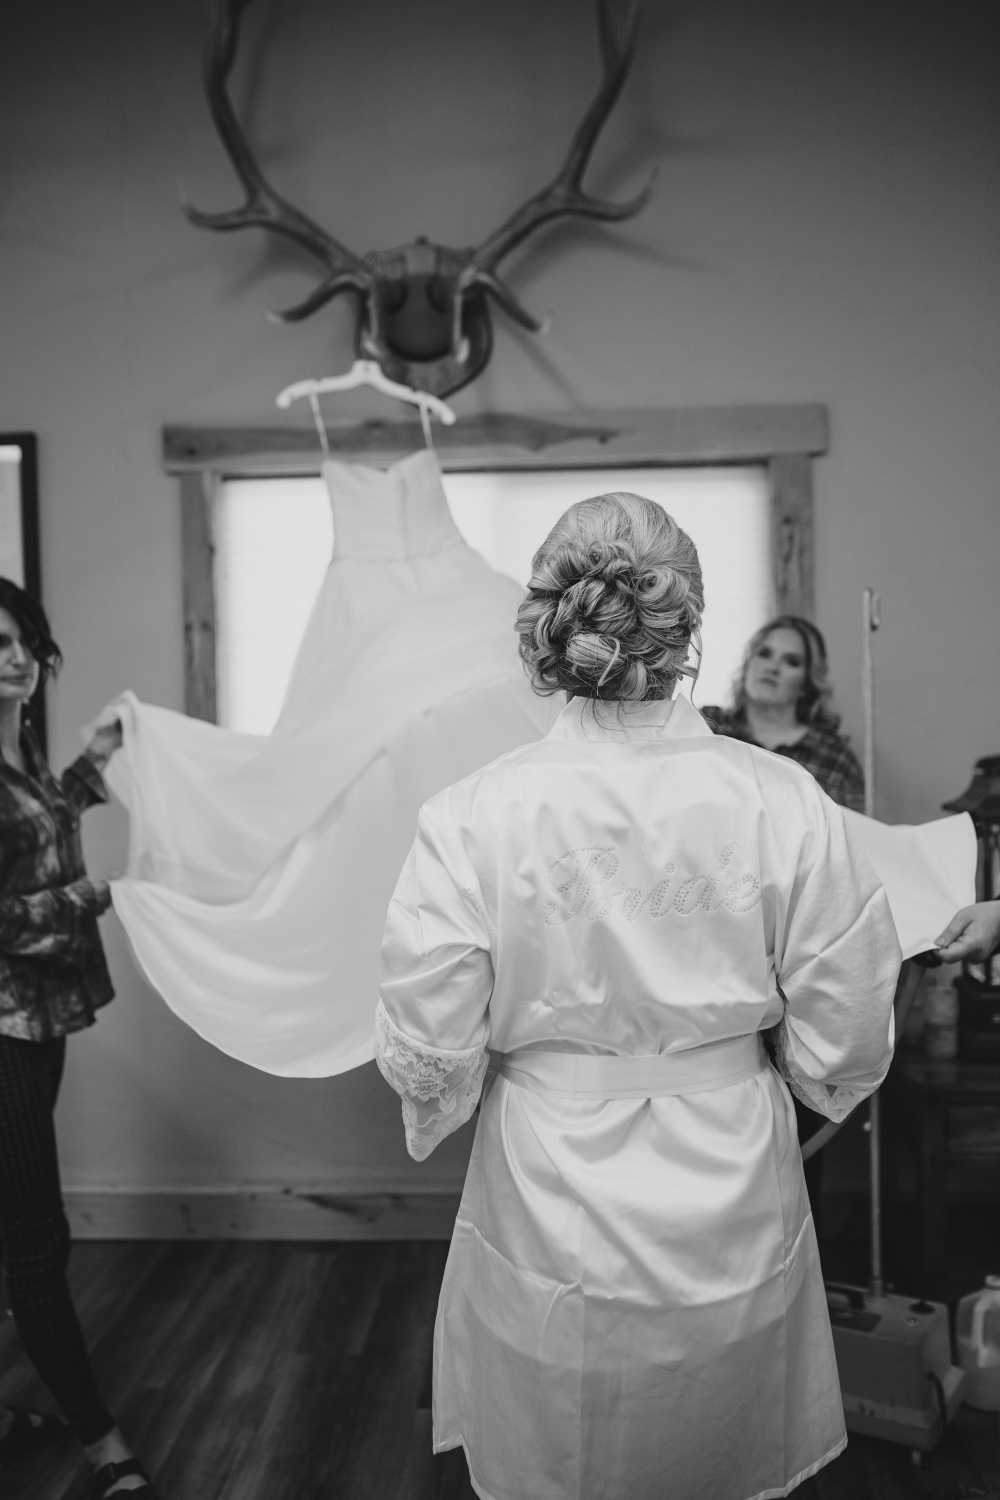 lindseyjane_wedding001.jpg